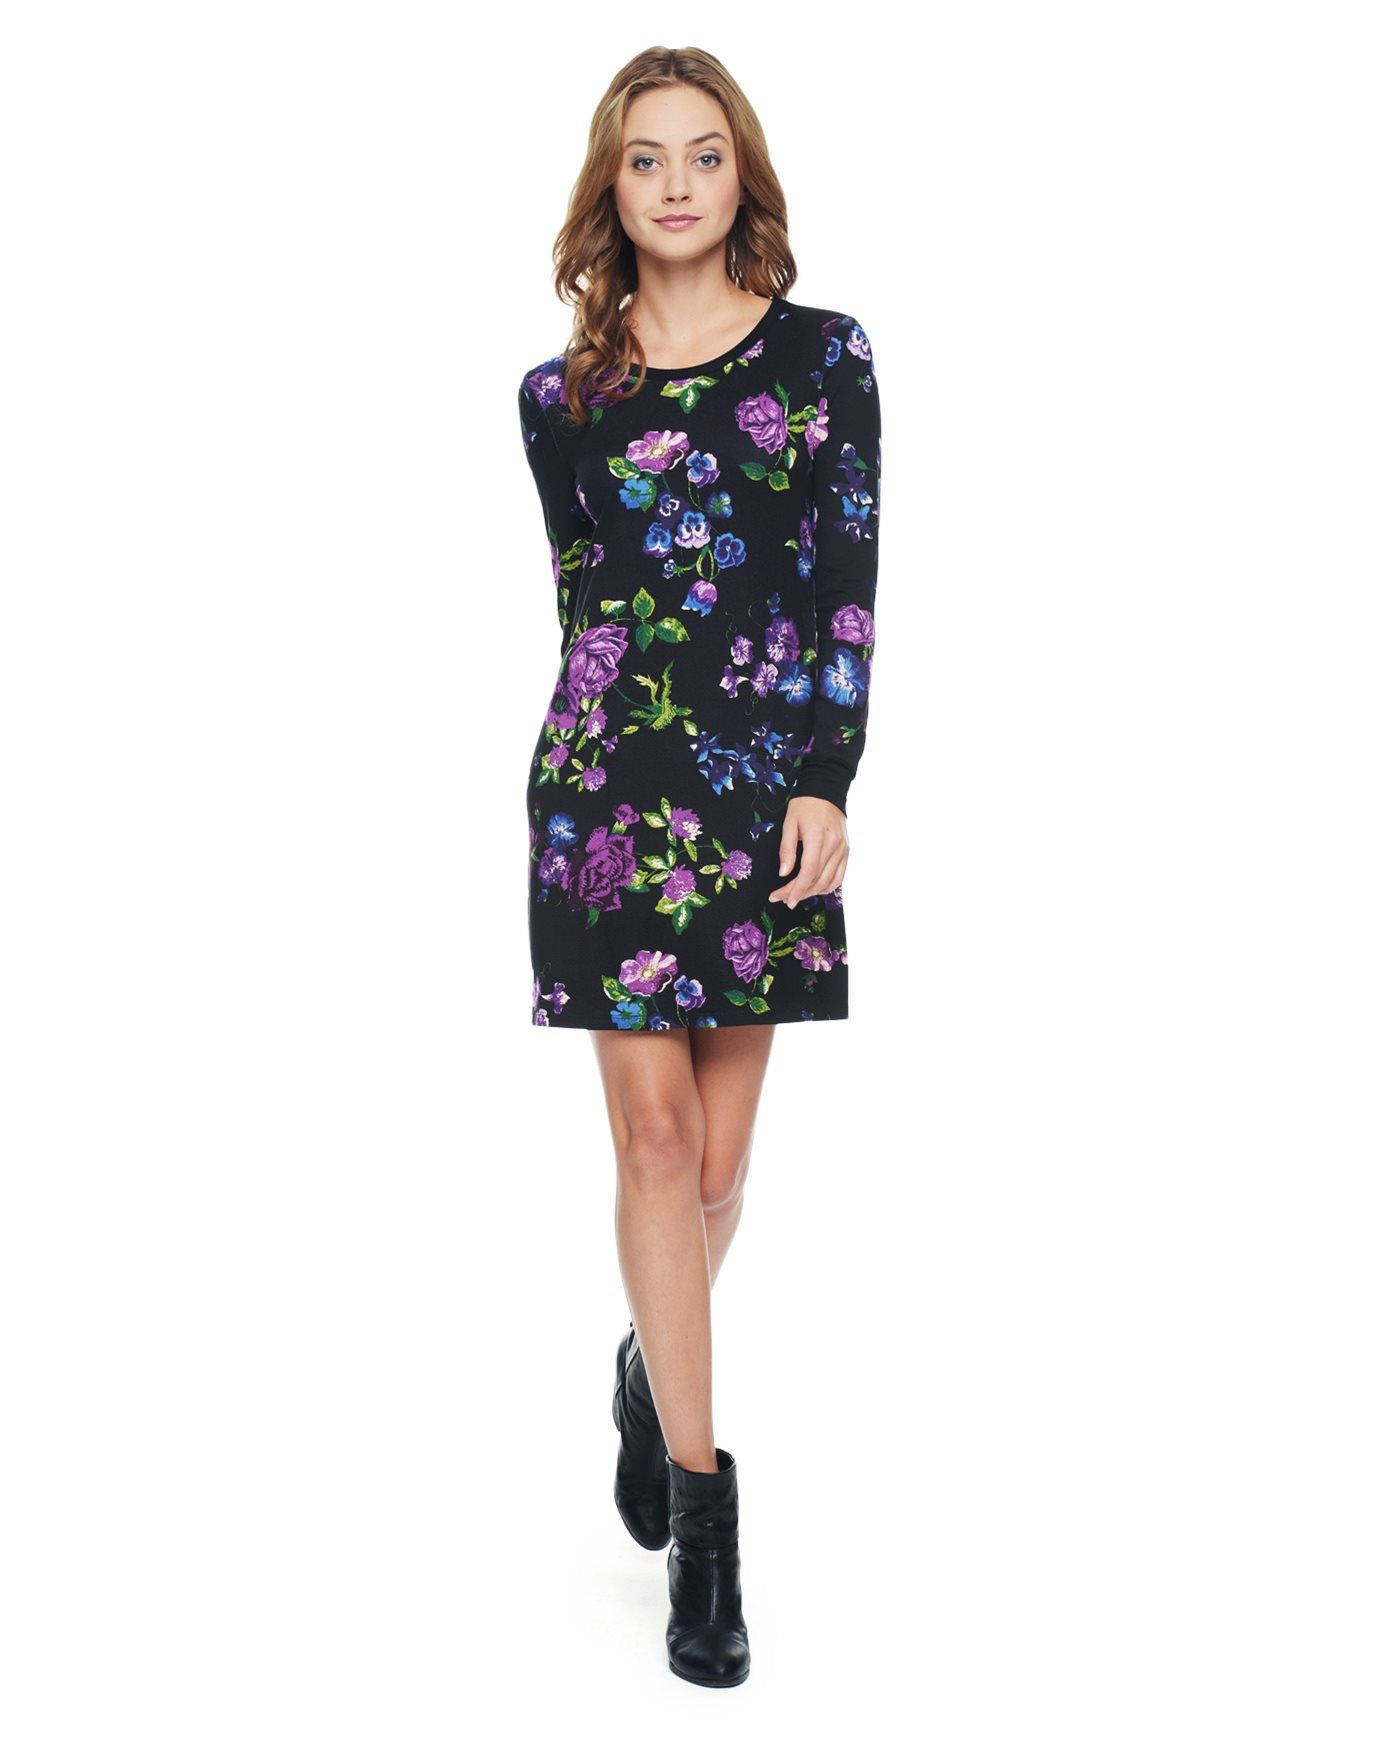 SKETCHED FLORAL JERSEY SHIFT DRESS - Juicy Couture